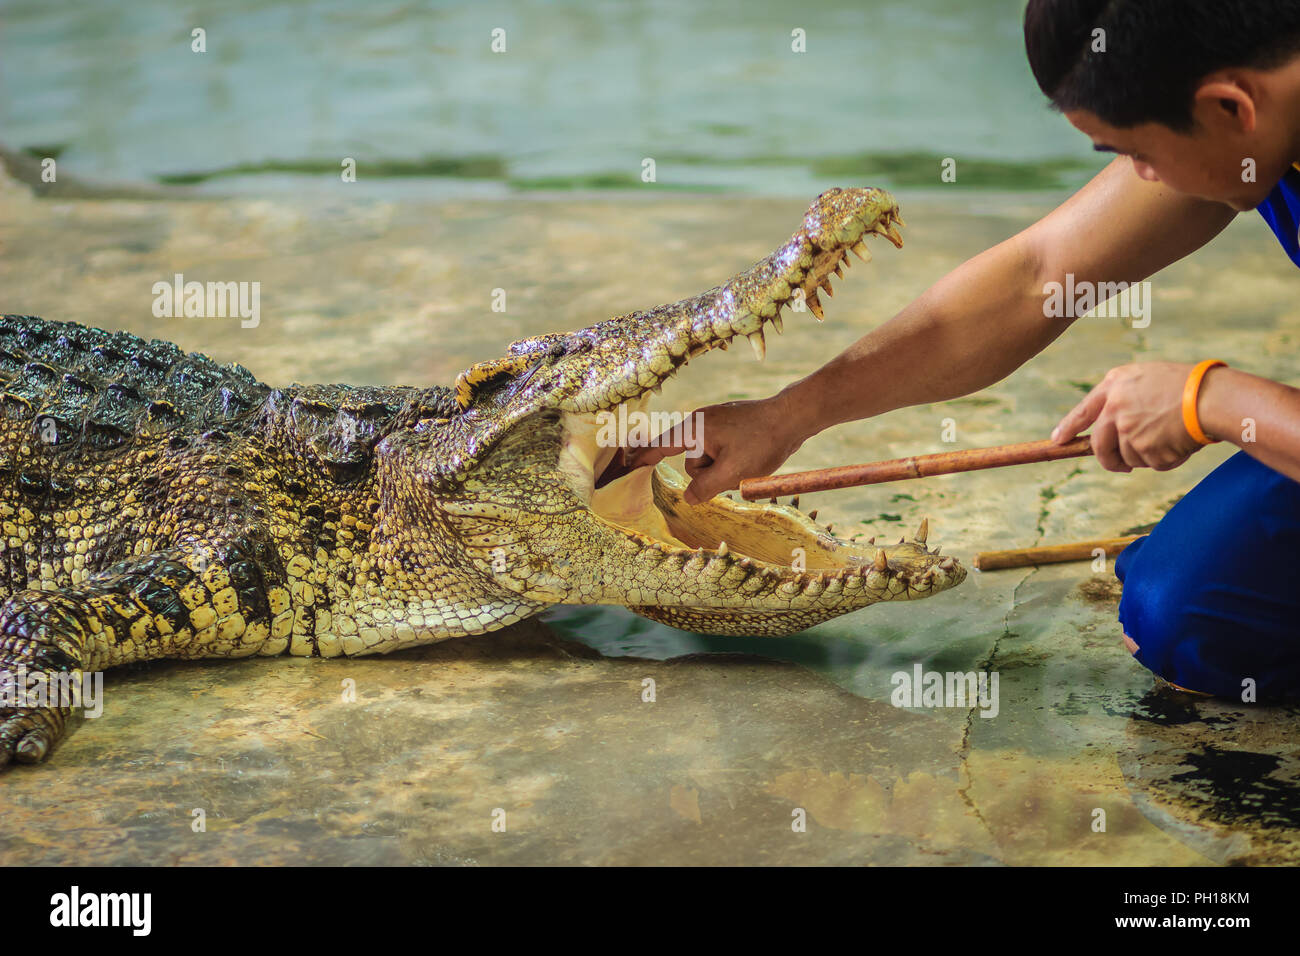 Showman using his hand to delve to the throat of the opened mouth's crocodile. The stuntman puts his hand into the crocodile's mouth. - Stock Image